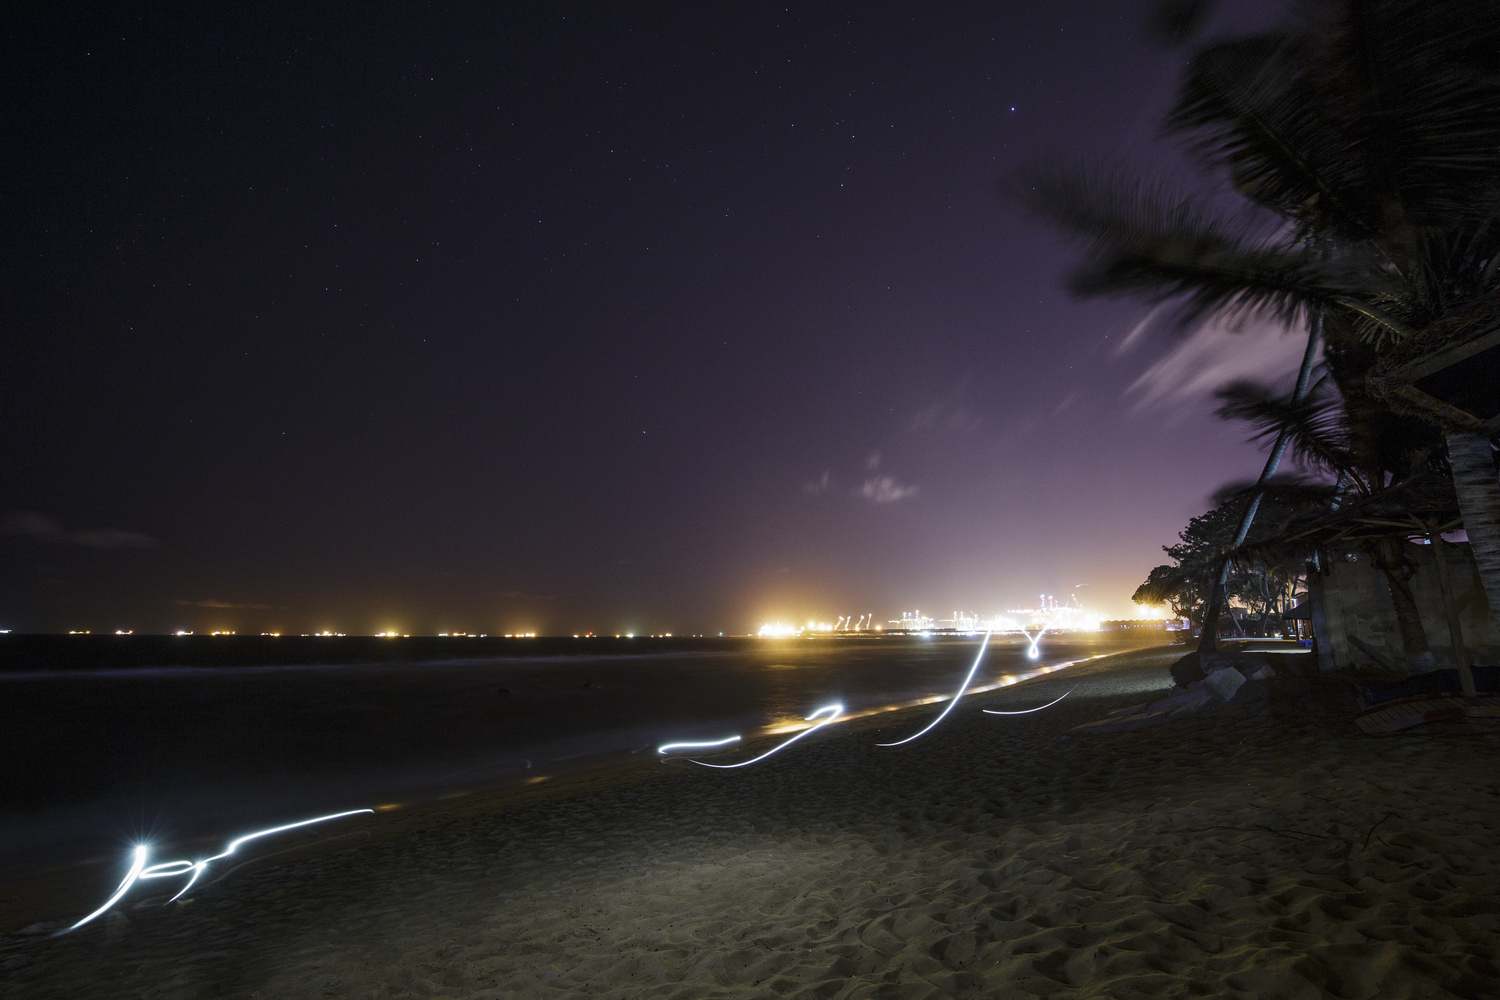 Coco Beach at night by Felix Müller